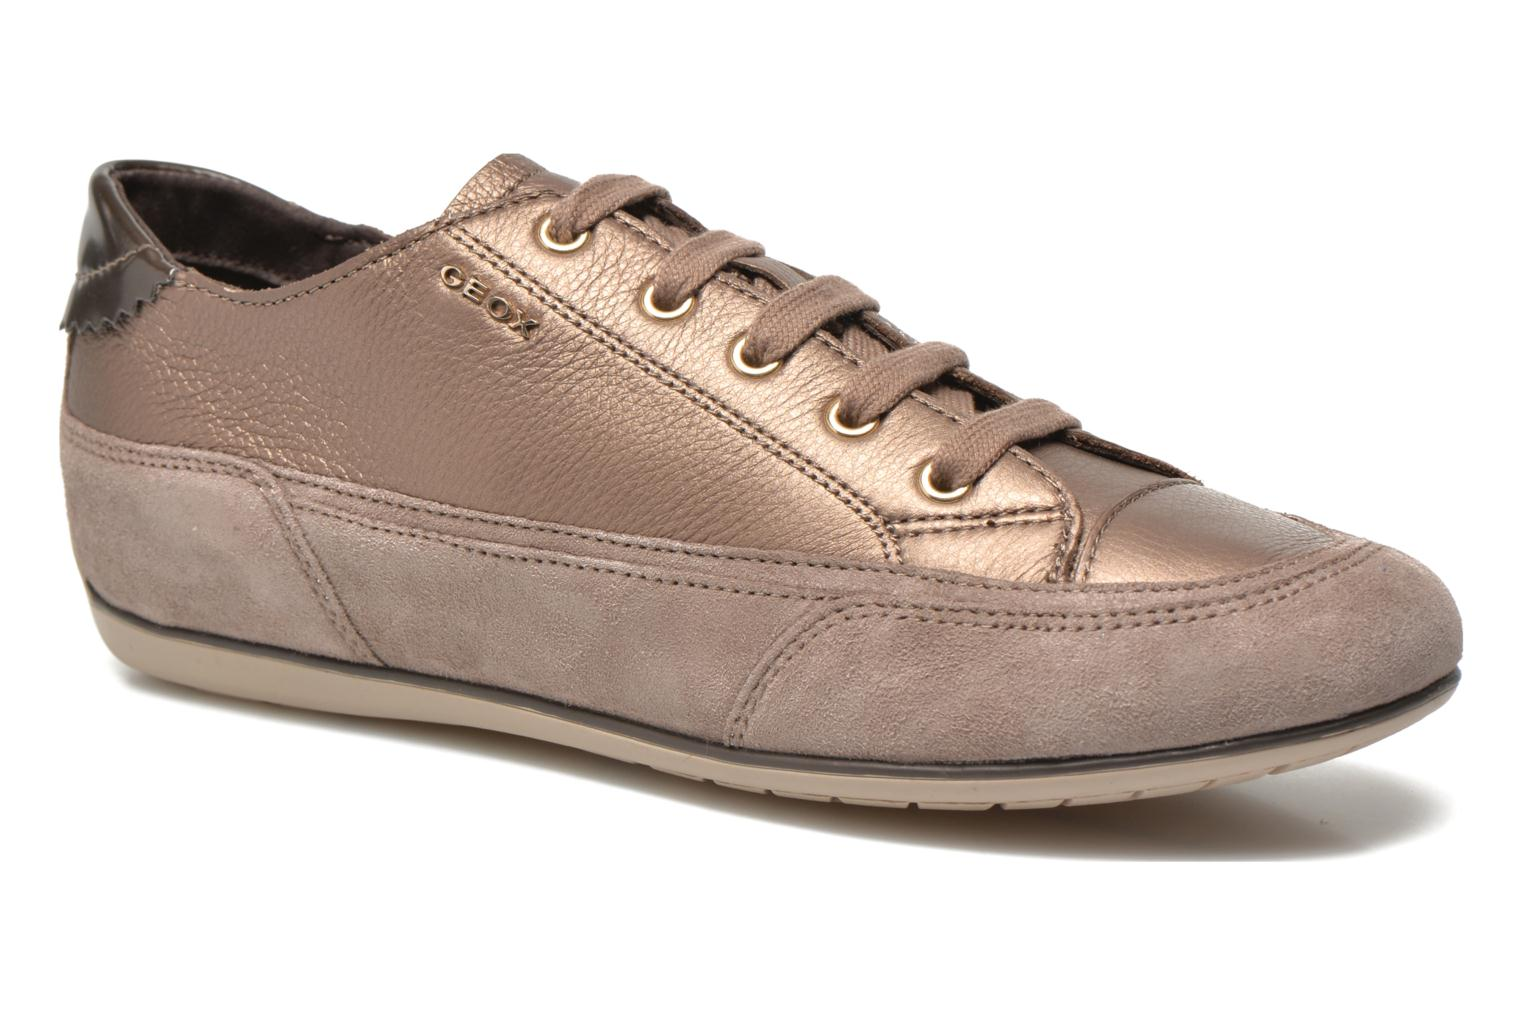 D New Moena A D4260A LEAD/TAUPE